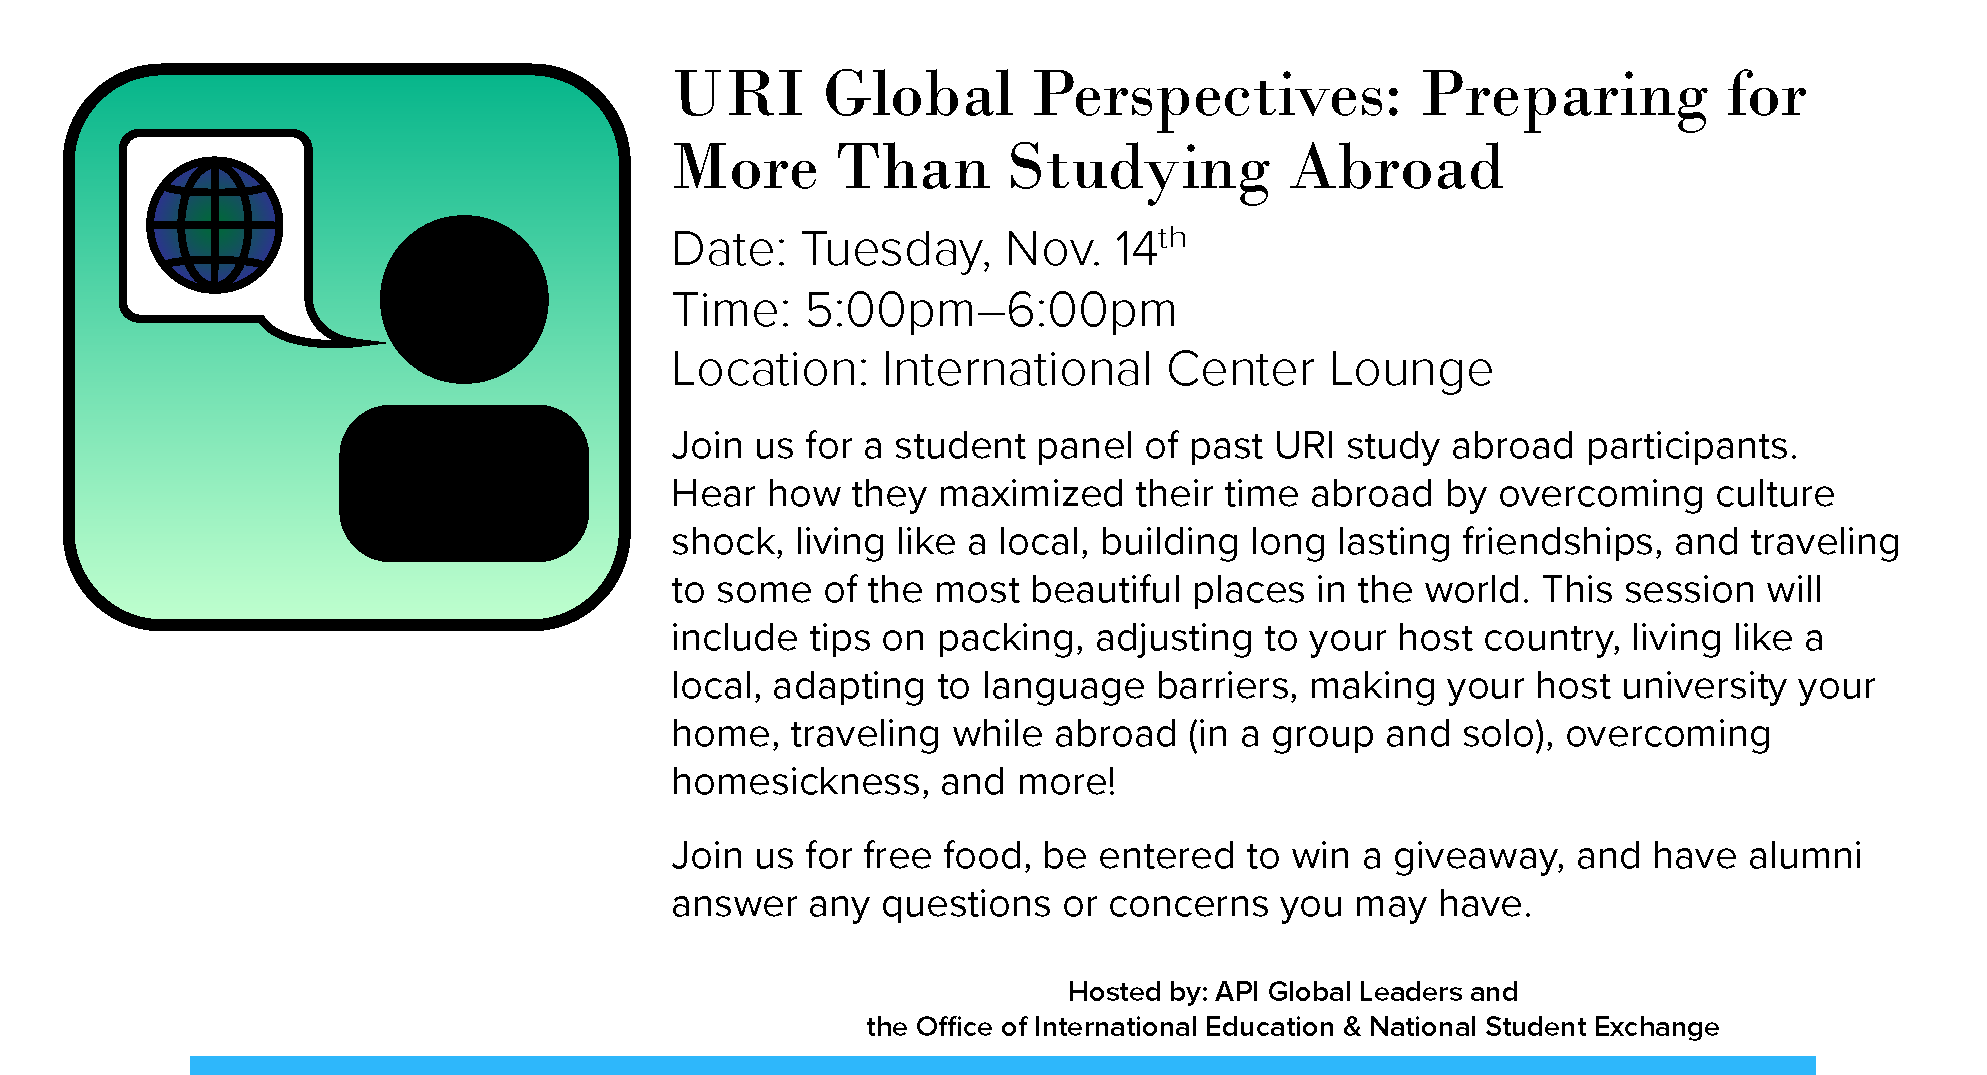 URI Global Perspectives: Preparing for More Than Studying Abroad Event